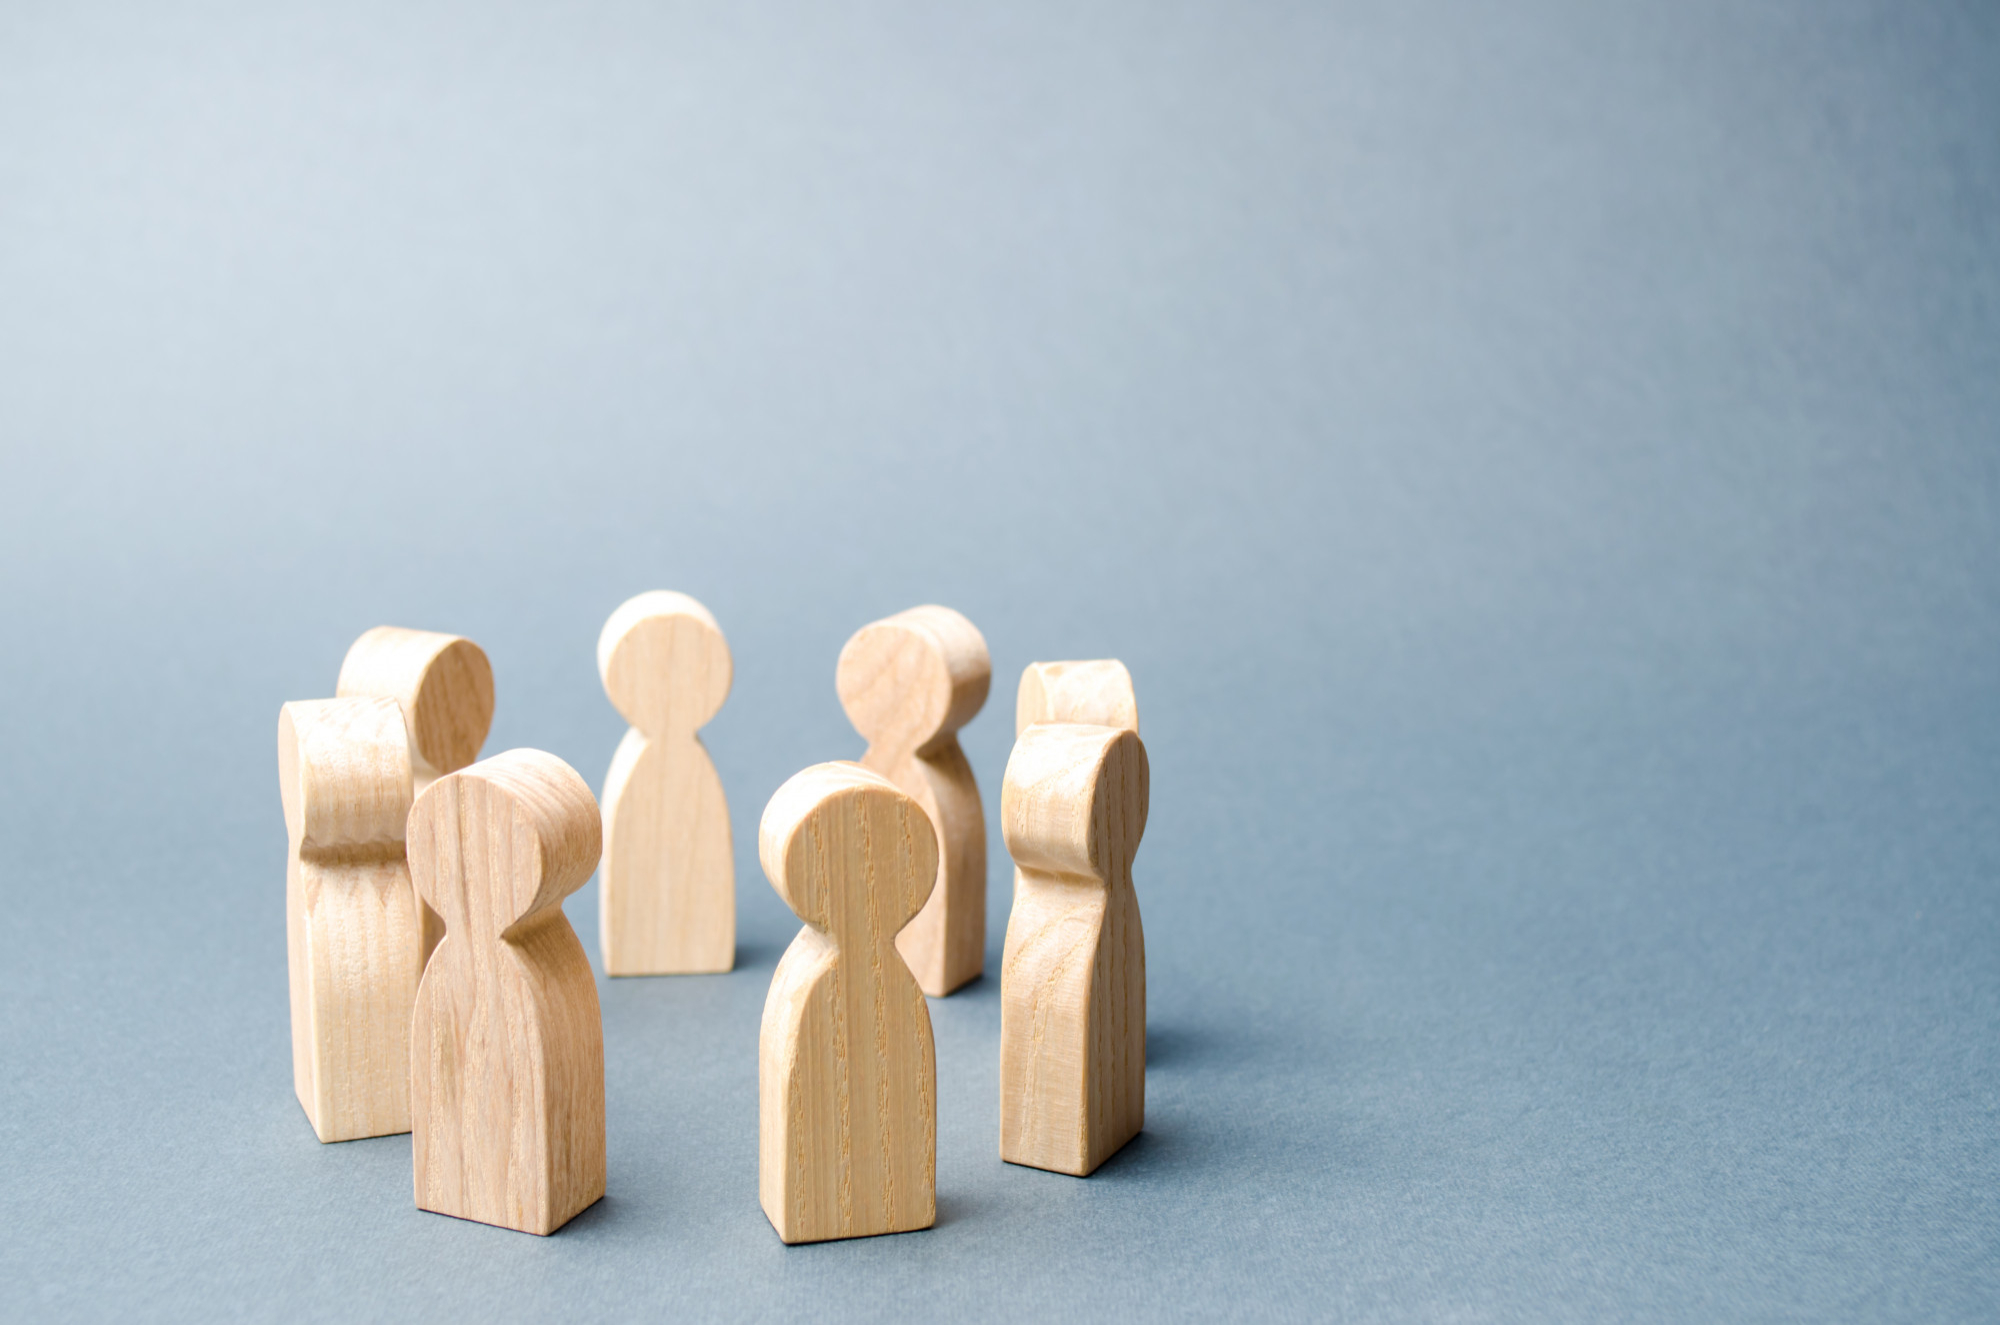 How To Keep Virtual Teams Engaged: Focus On The Team